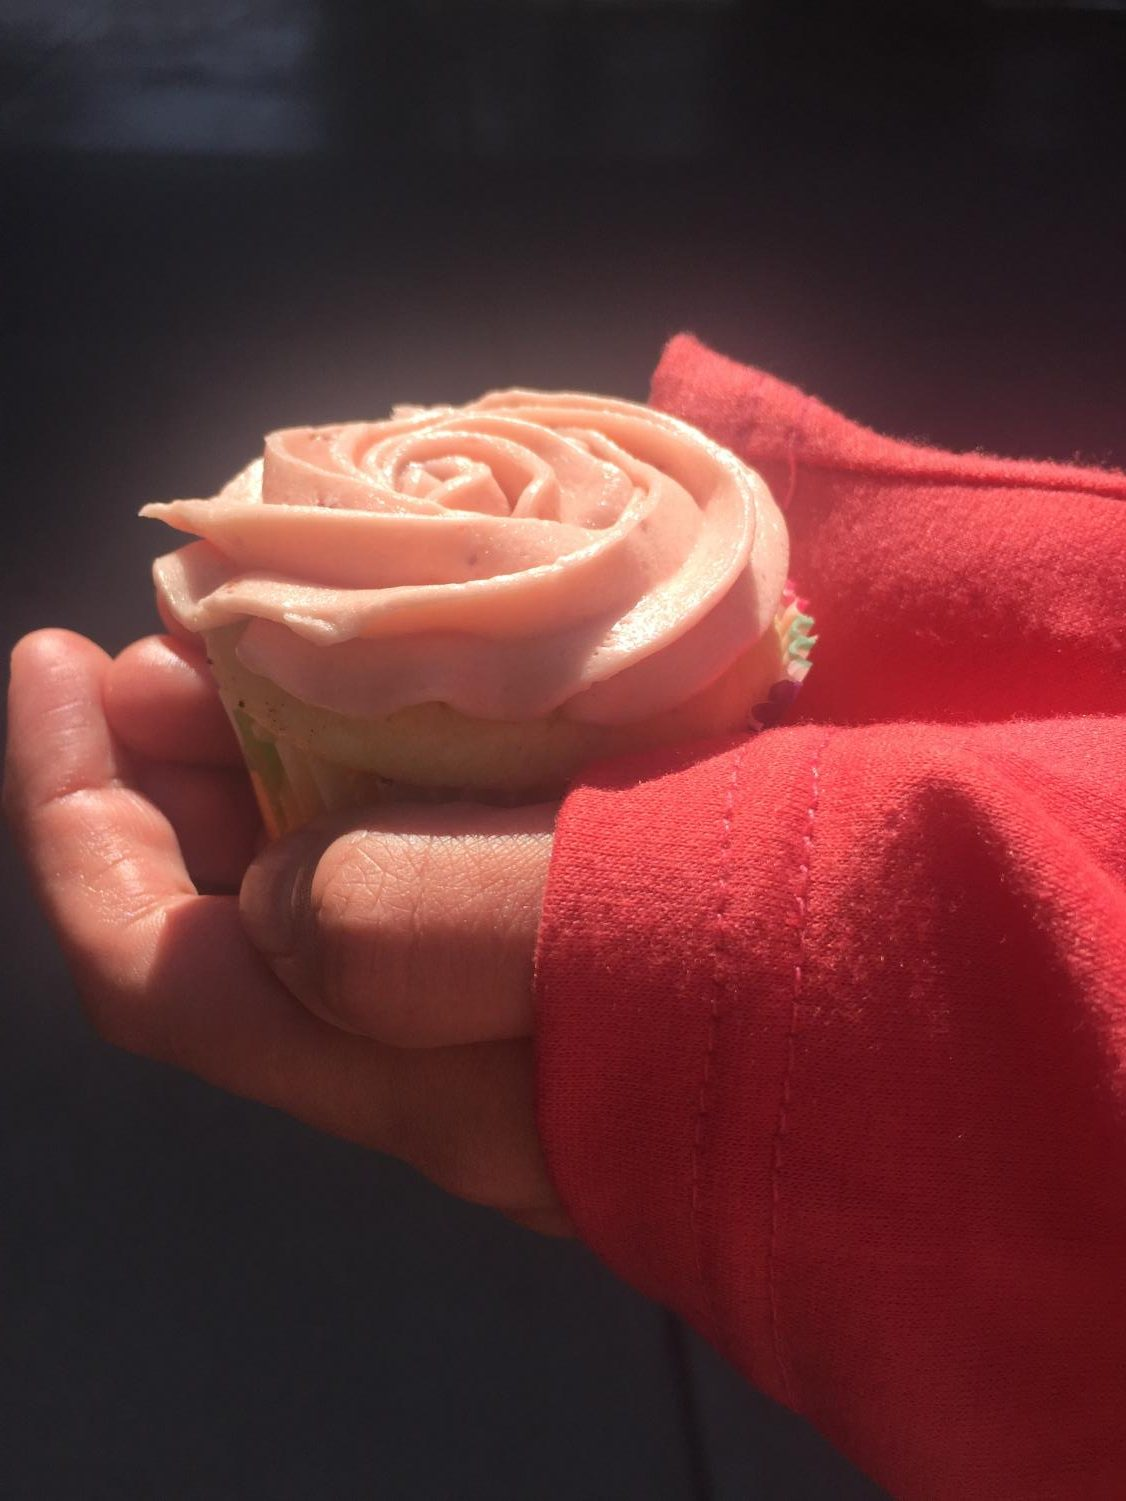 A beautiful cupcake is the perfect way to treat yourself.